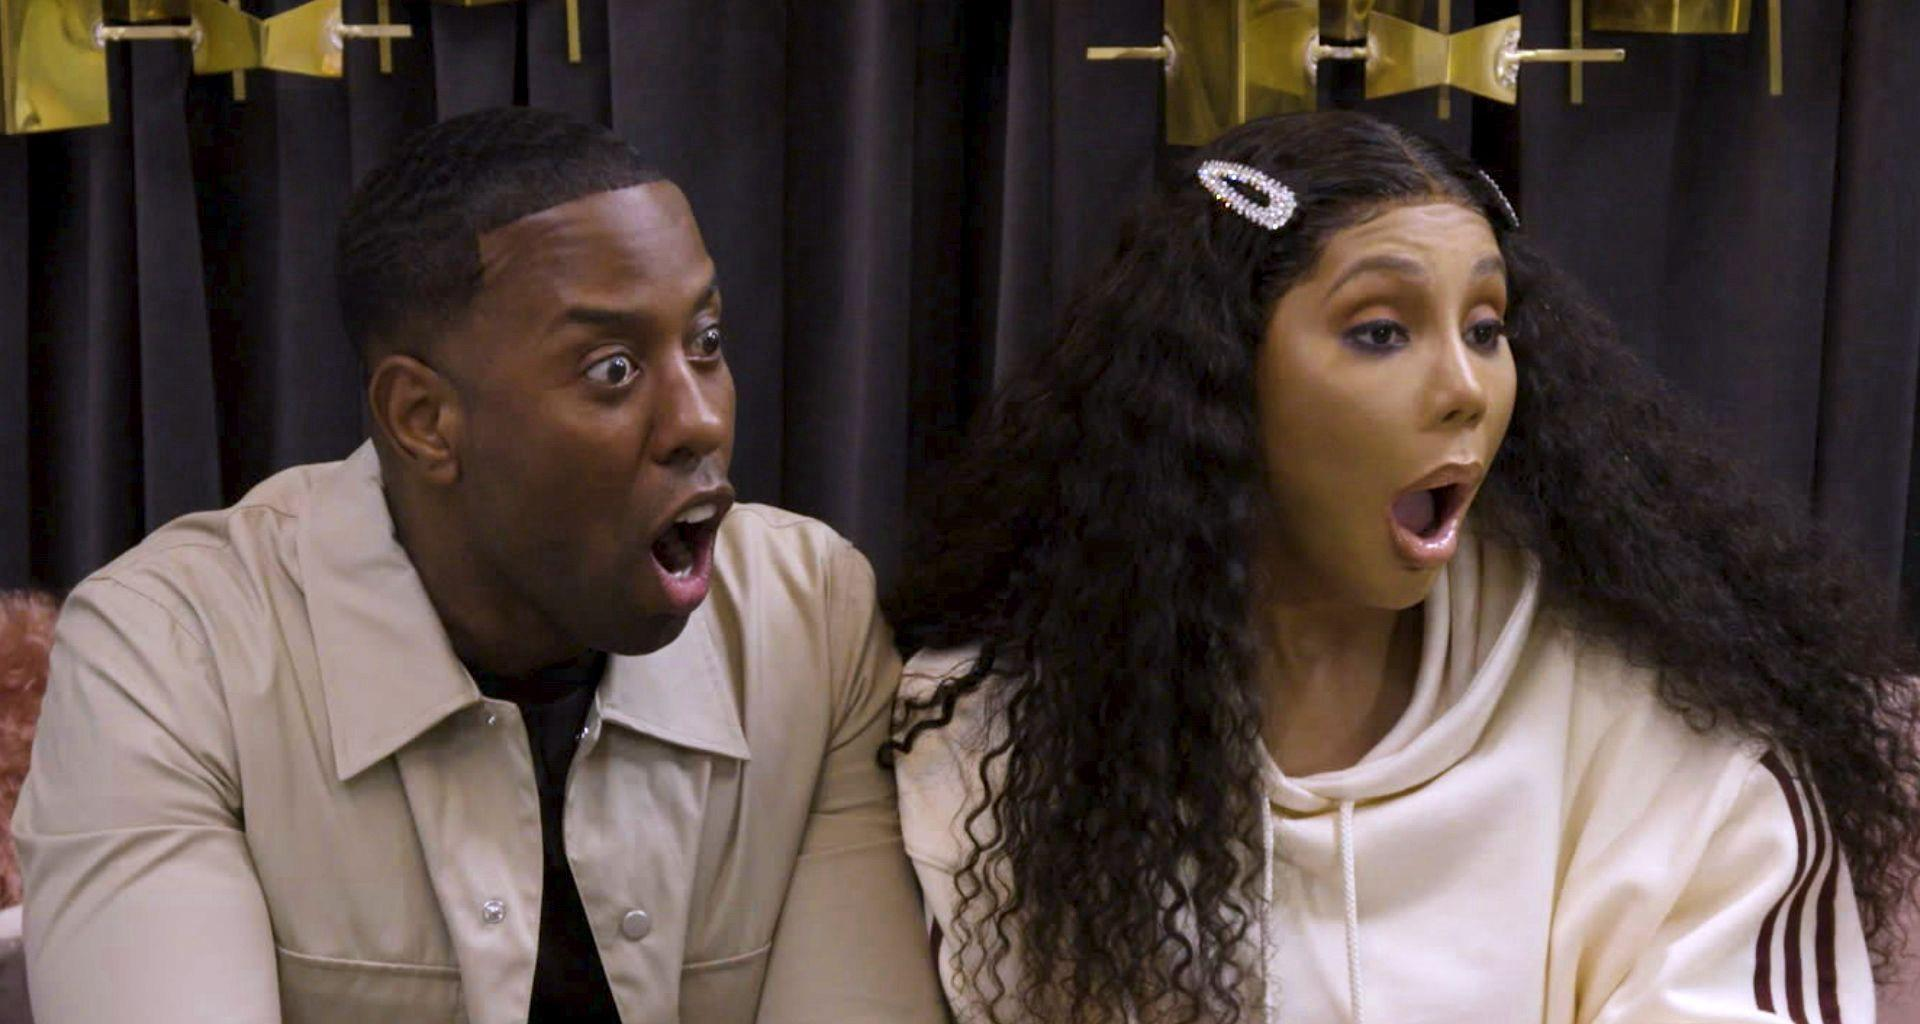 Tamar Braxton And Johnny Wright's New Episode Of 'To Catch a Beautician Official After Show' Is Out!